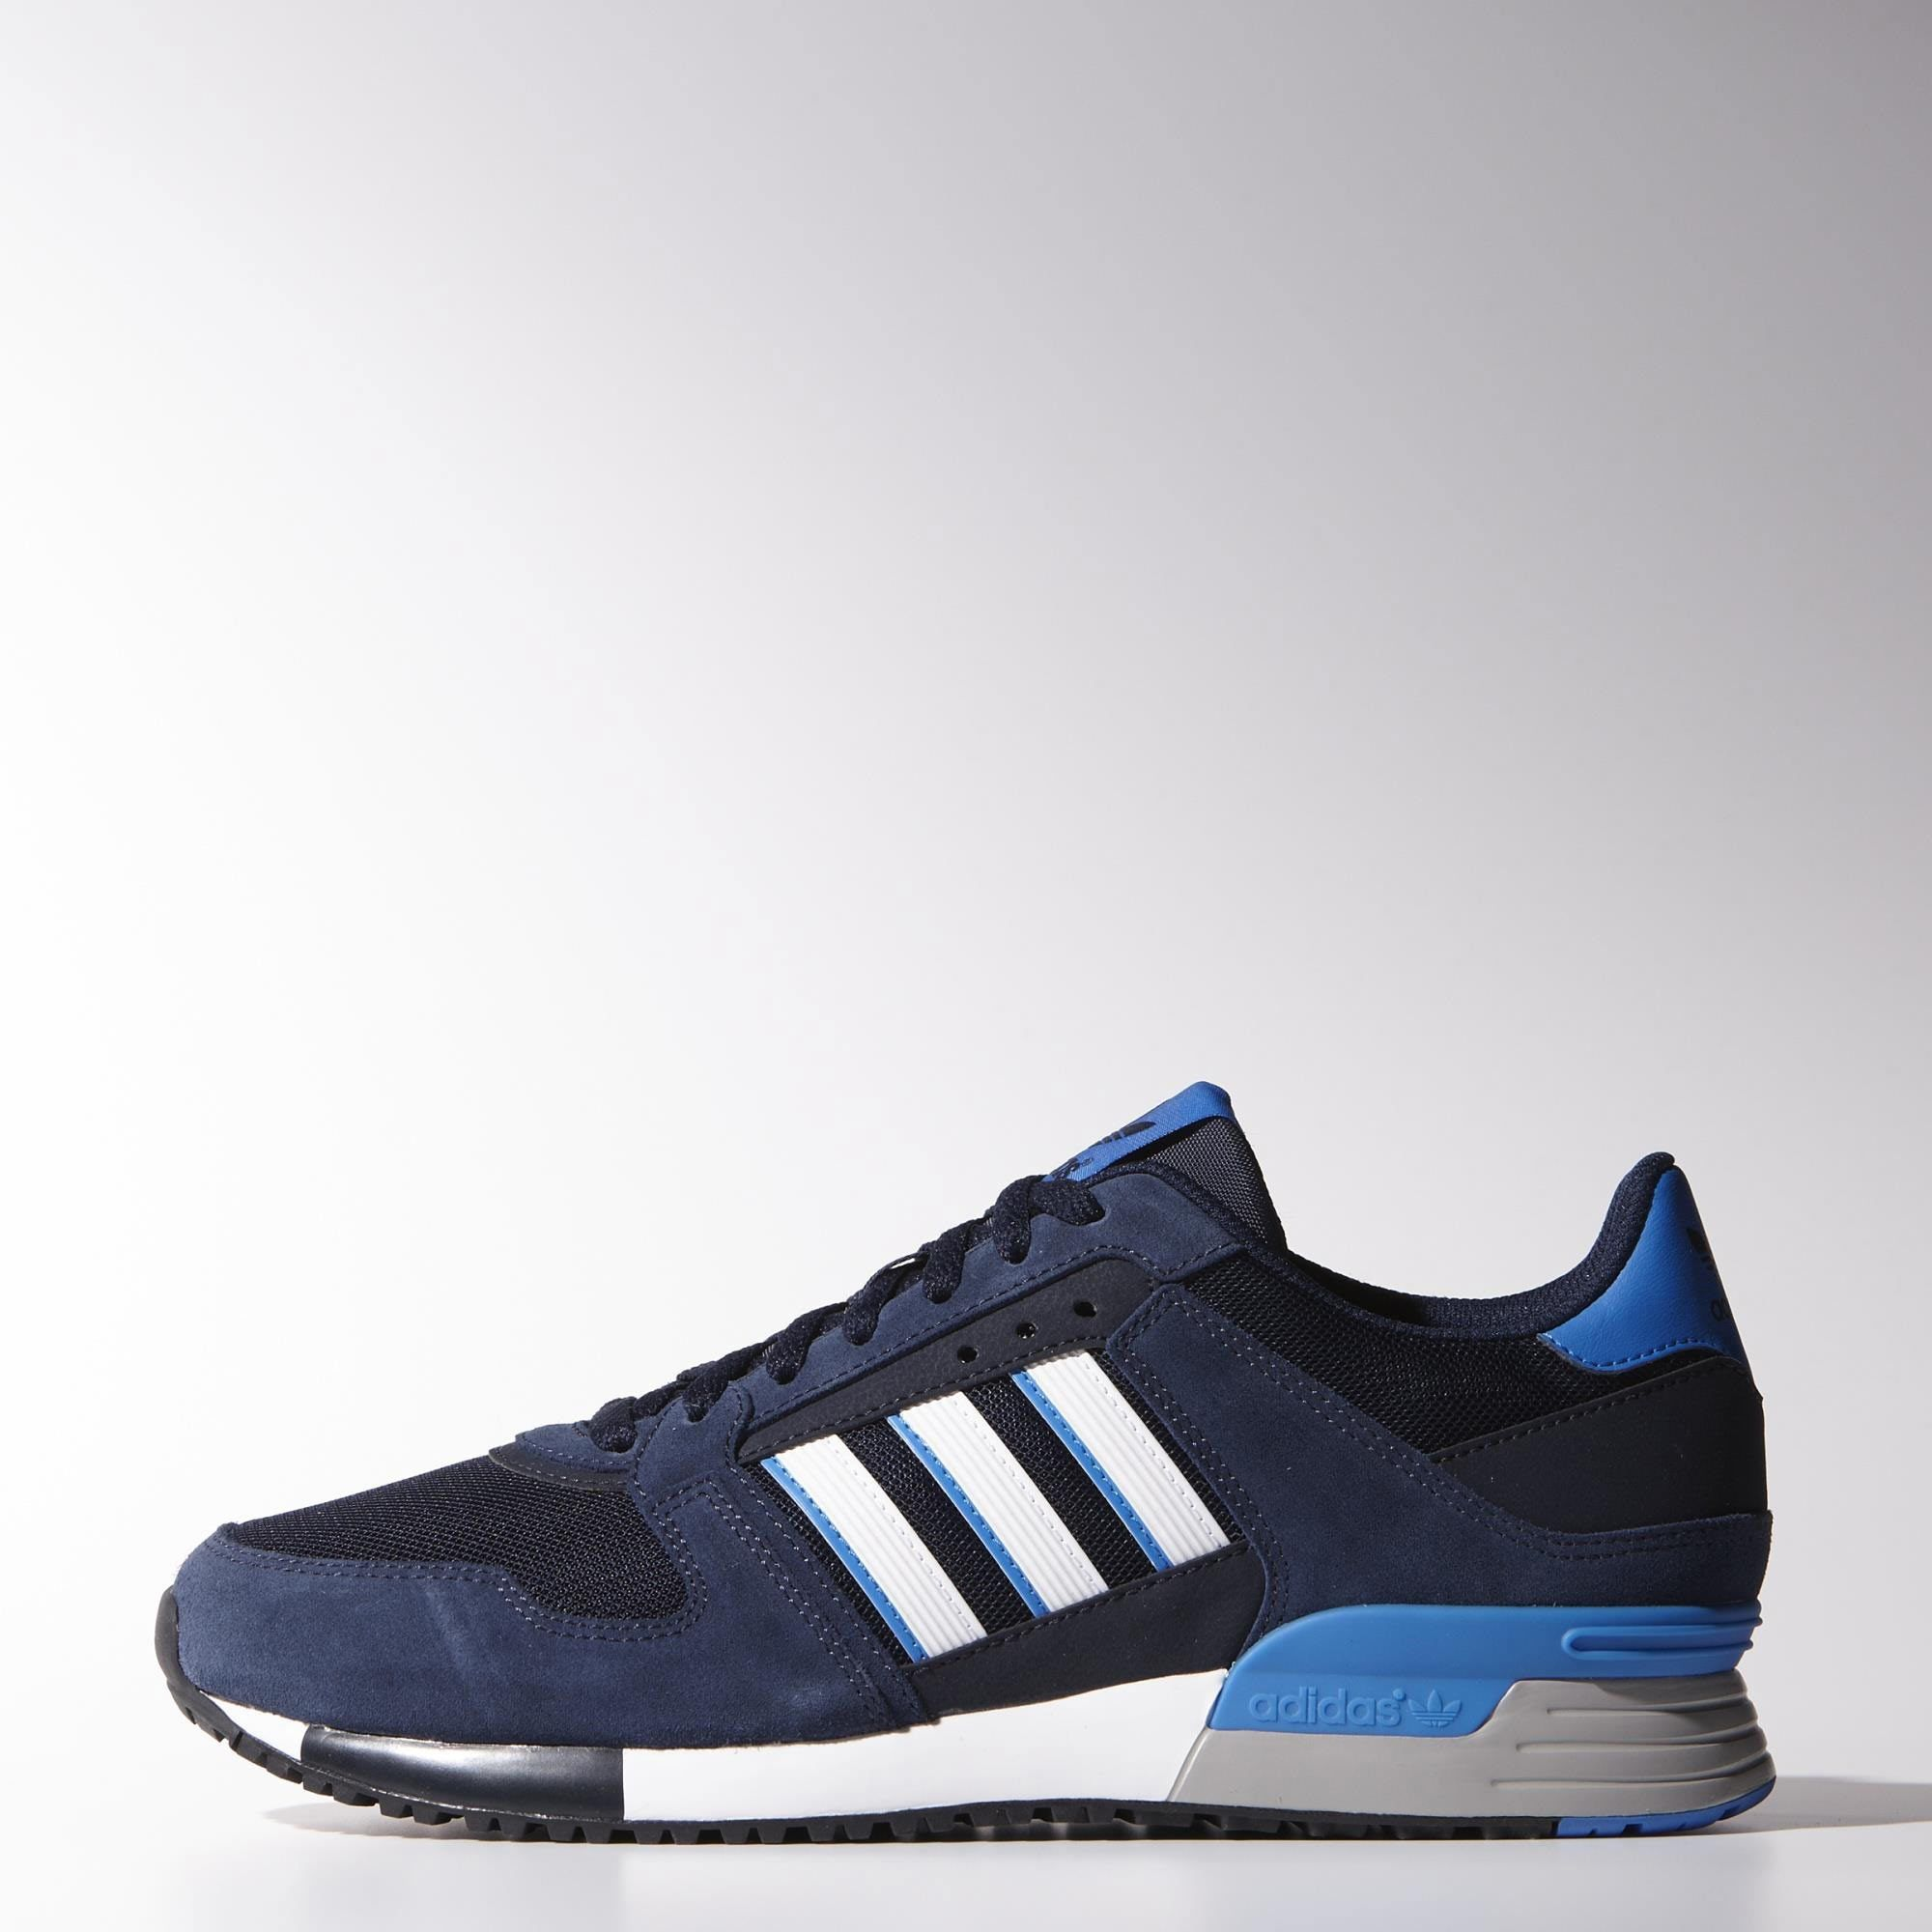 on sale a426d 53952 spain adidas zx 630 shoes adidas australia f8796 1dcd7